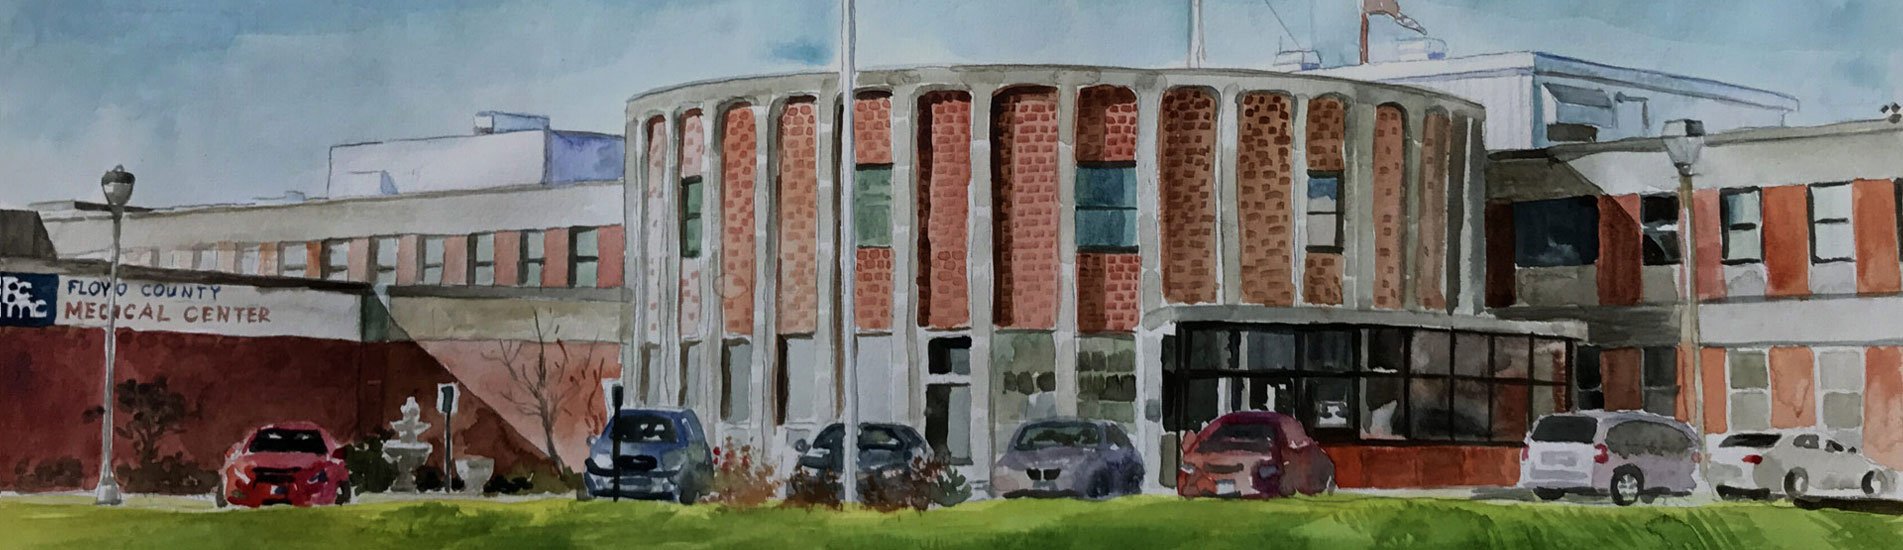 Front of FCMC facility in watercolor